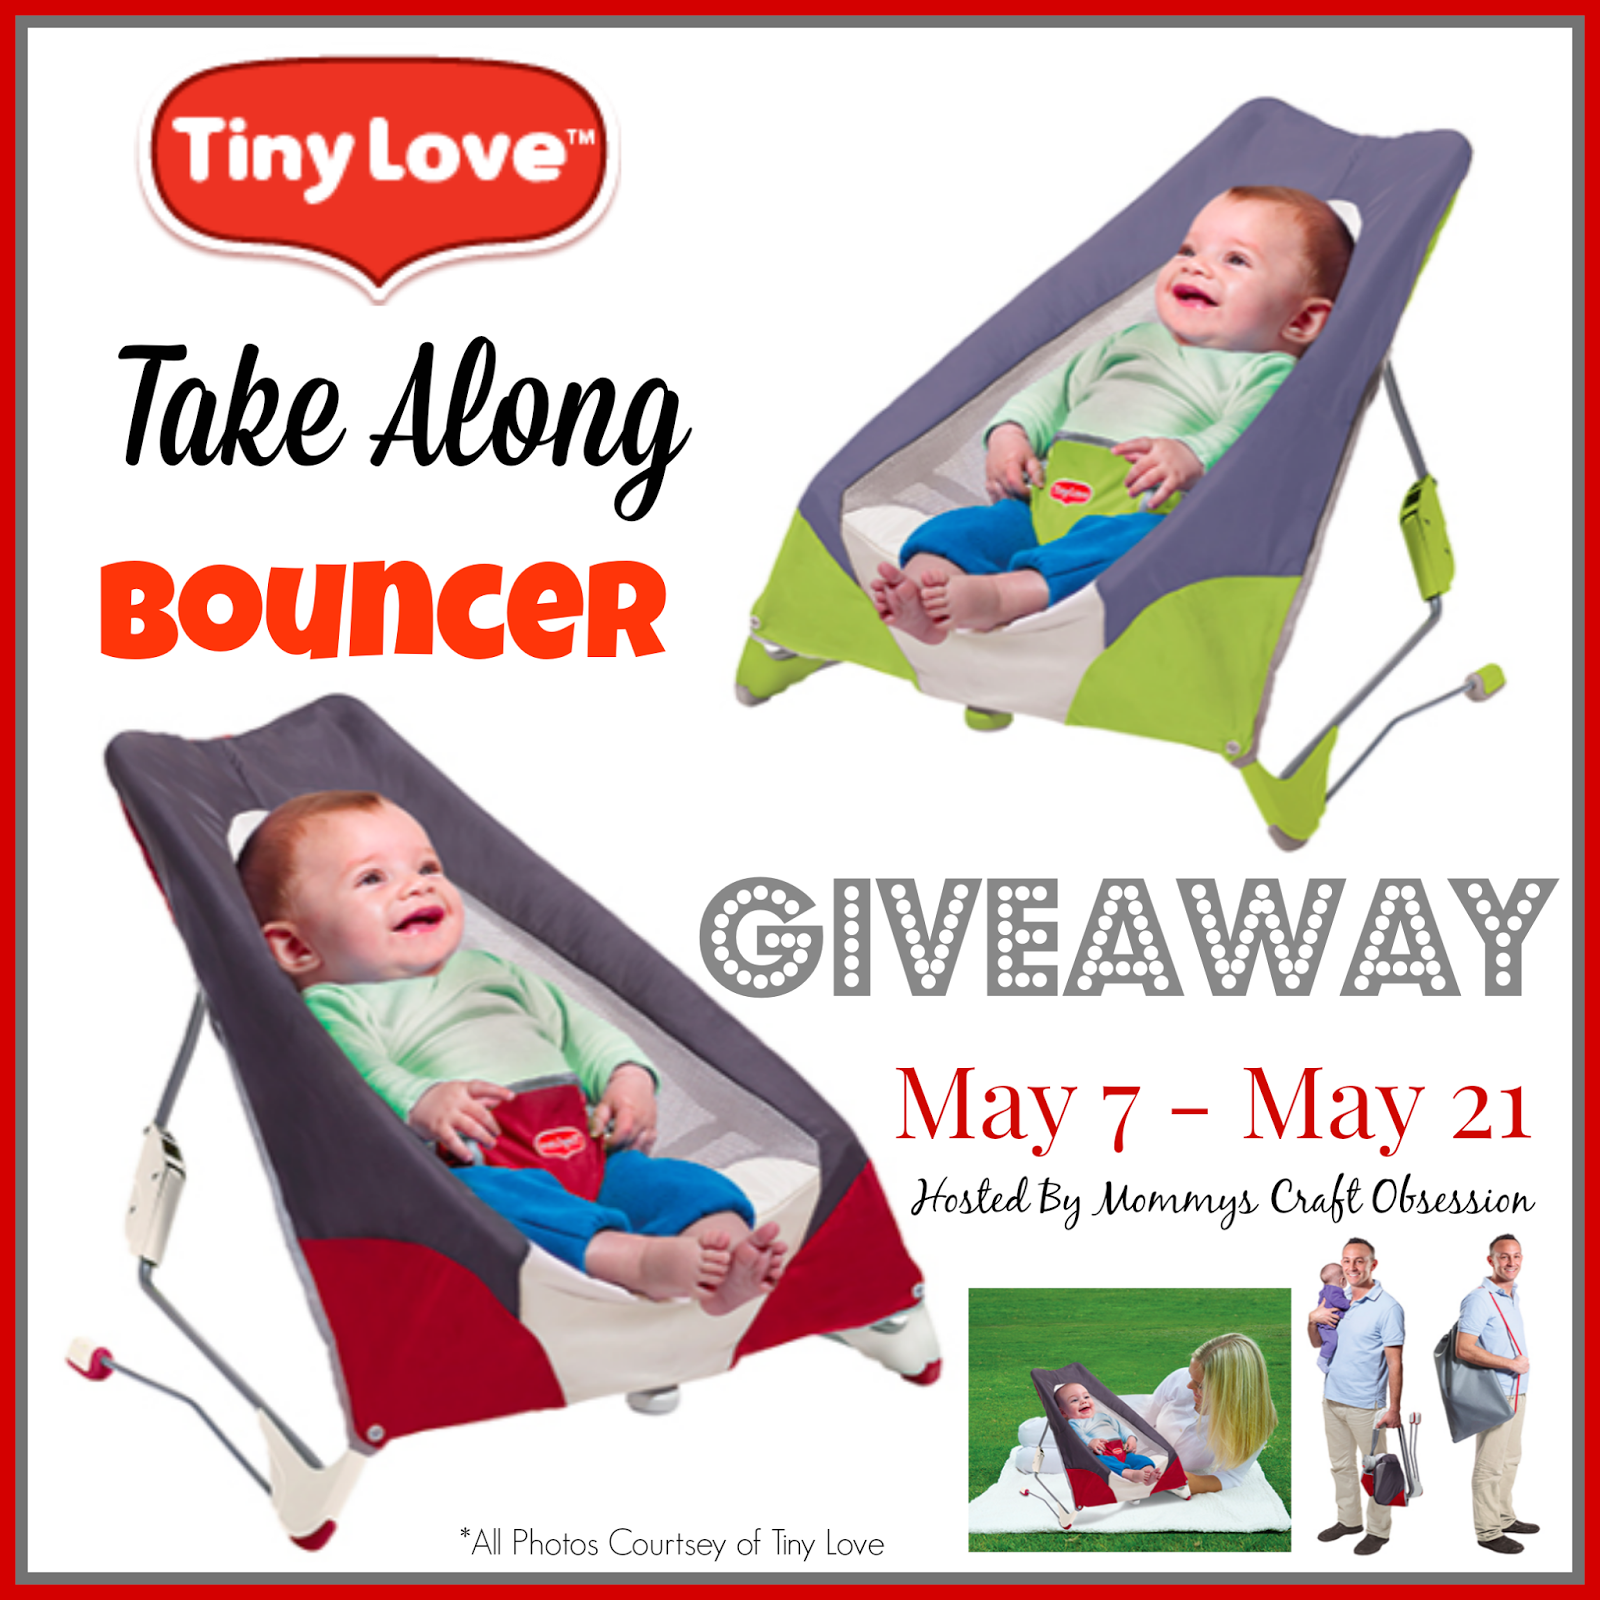 tiny love bouncer chair used dining table and chairs for sale mommy 39s obsessions blogspot take along